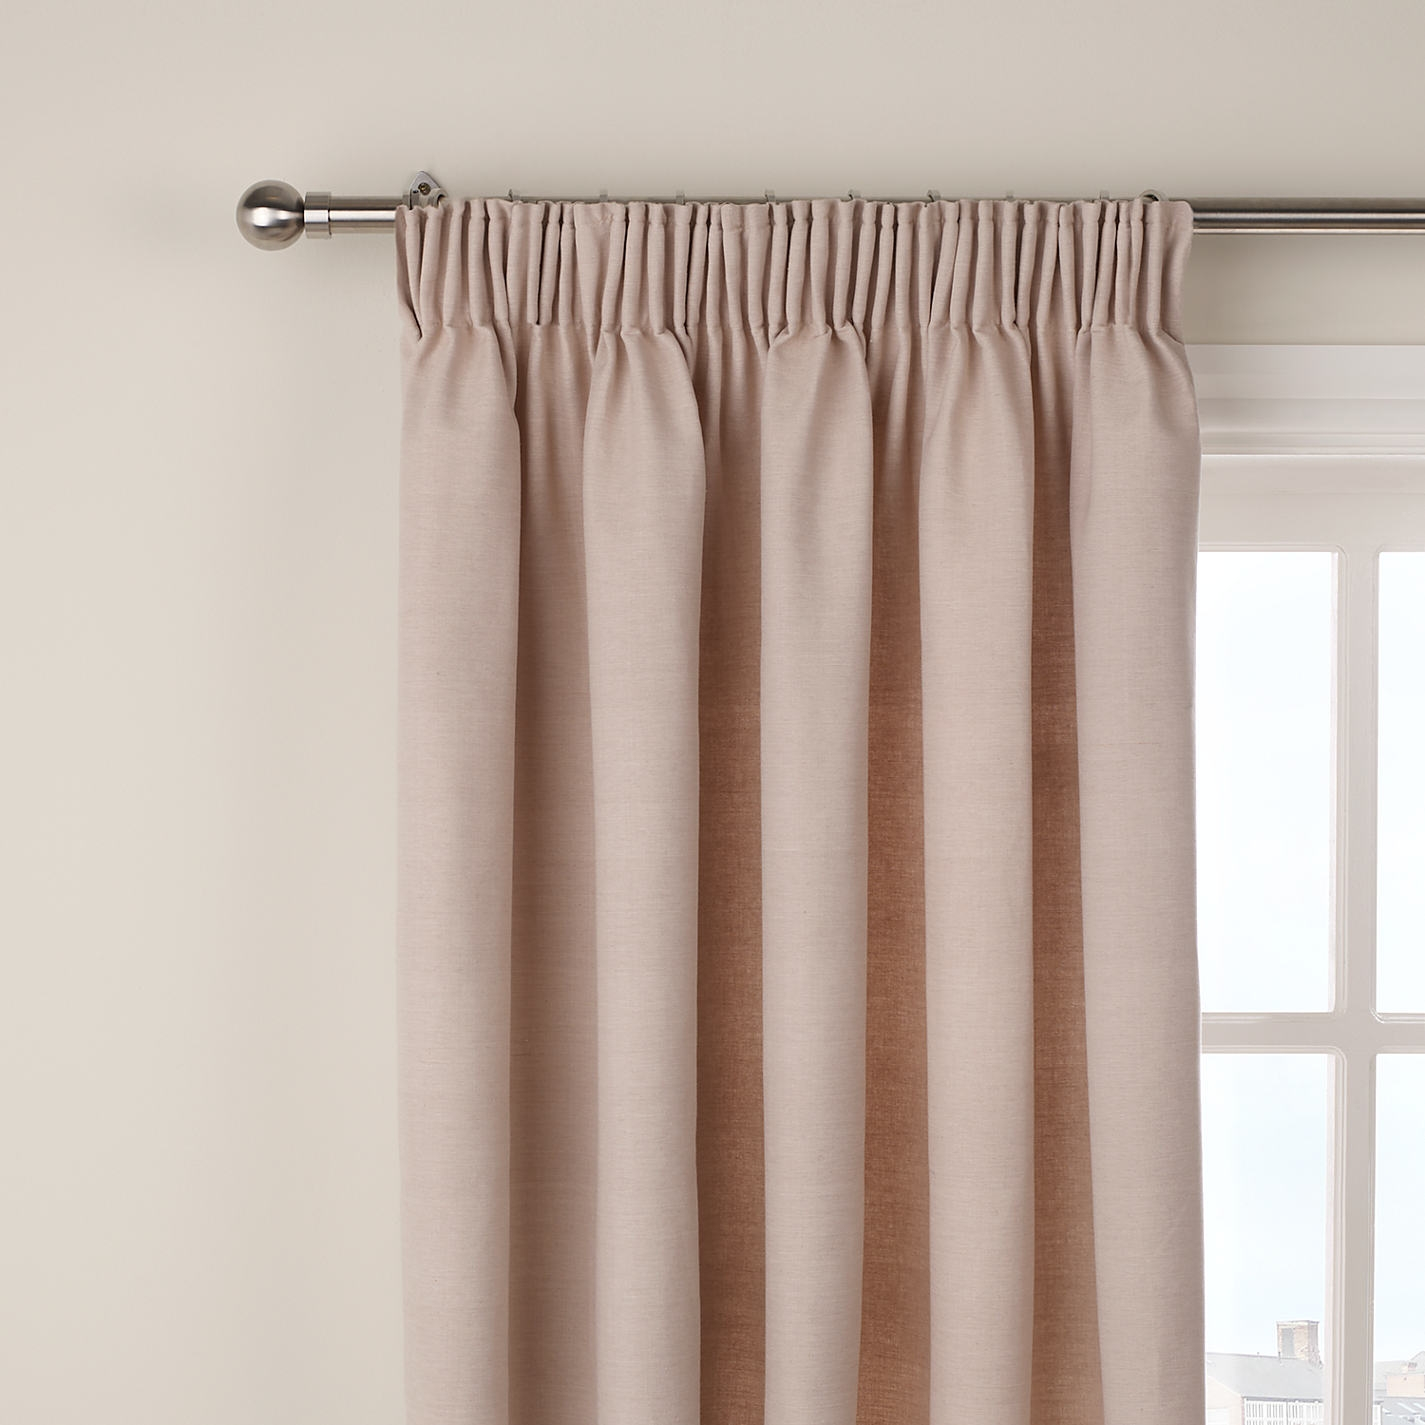 Pencil Pleat Curtains Buying Guides Egovjournal Home For Pencil Pleat Curtains (Image 8 of 15)